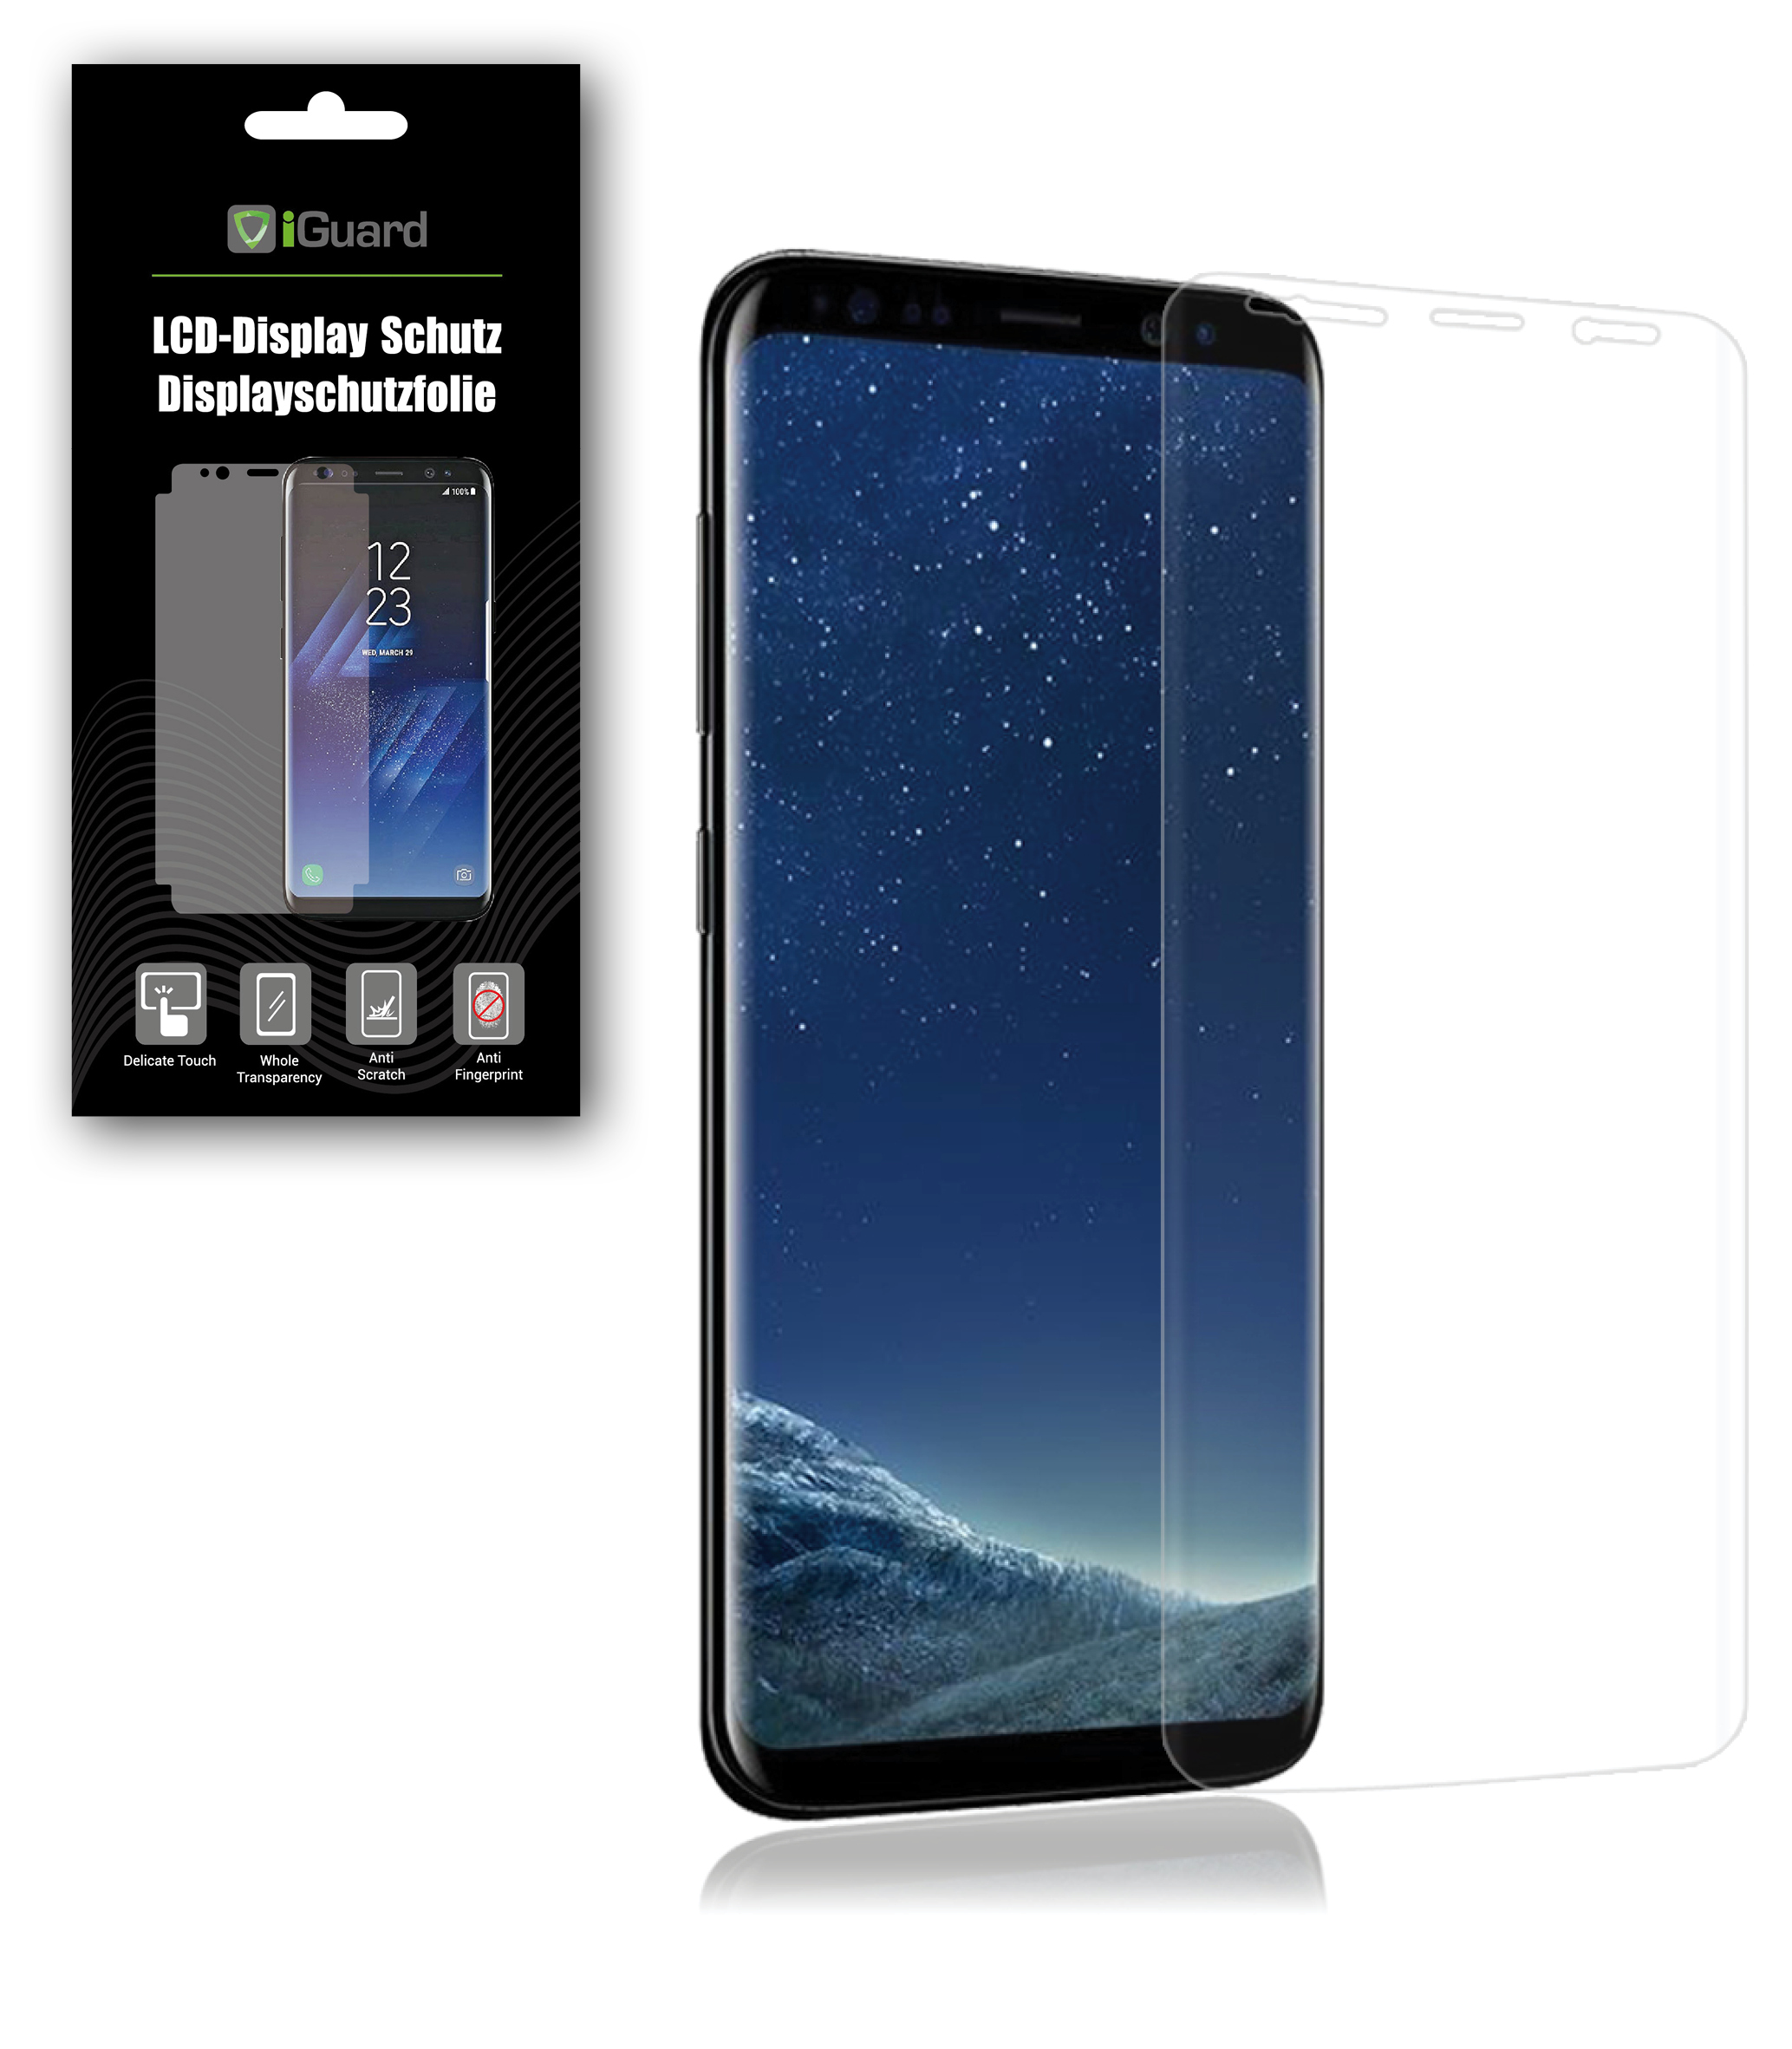 Iguard Screen Protector For Samsung Galaxy S8 Tpu Film Protection New Boxed Ebay